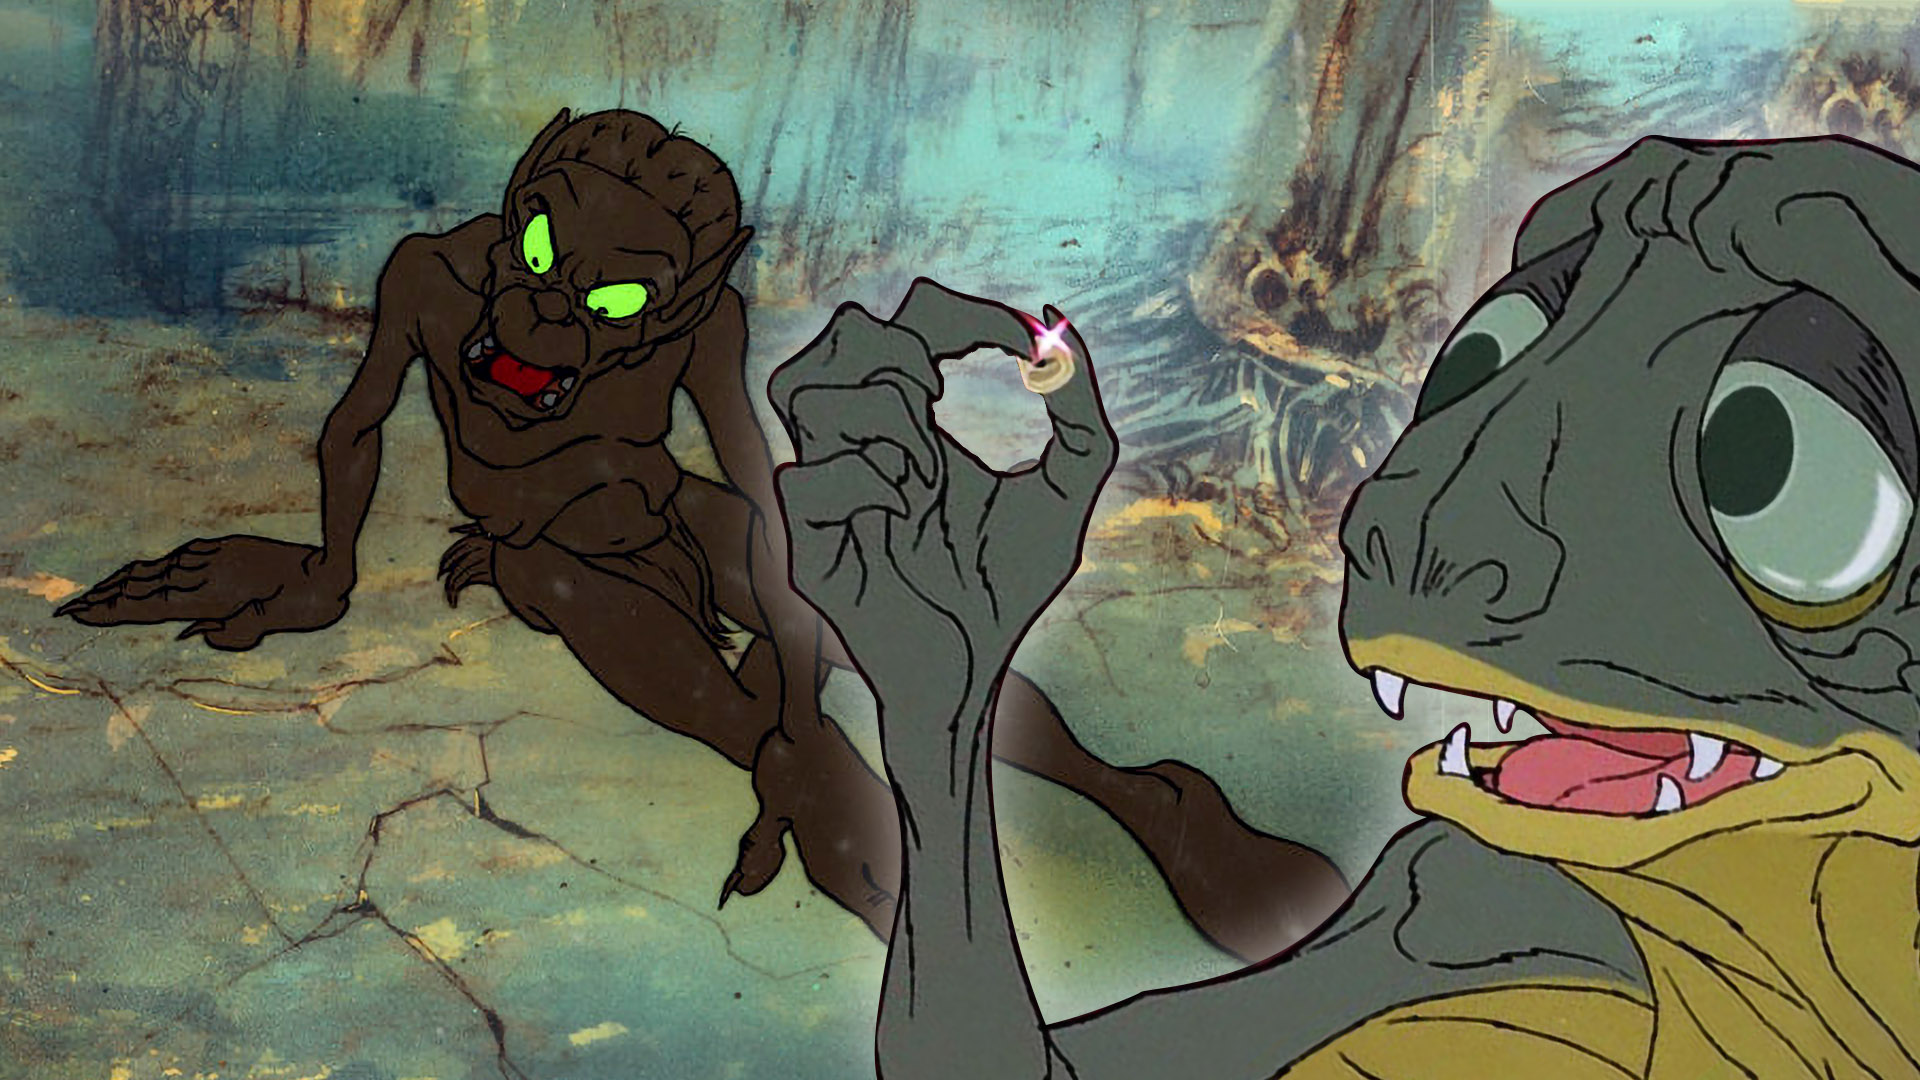 bakshi-vs-rankin-bass.jpg